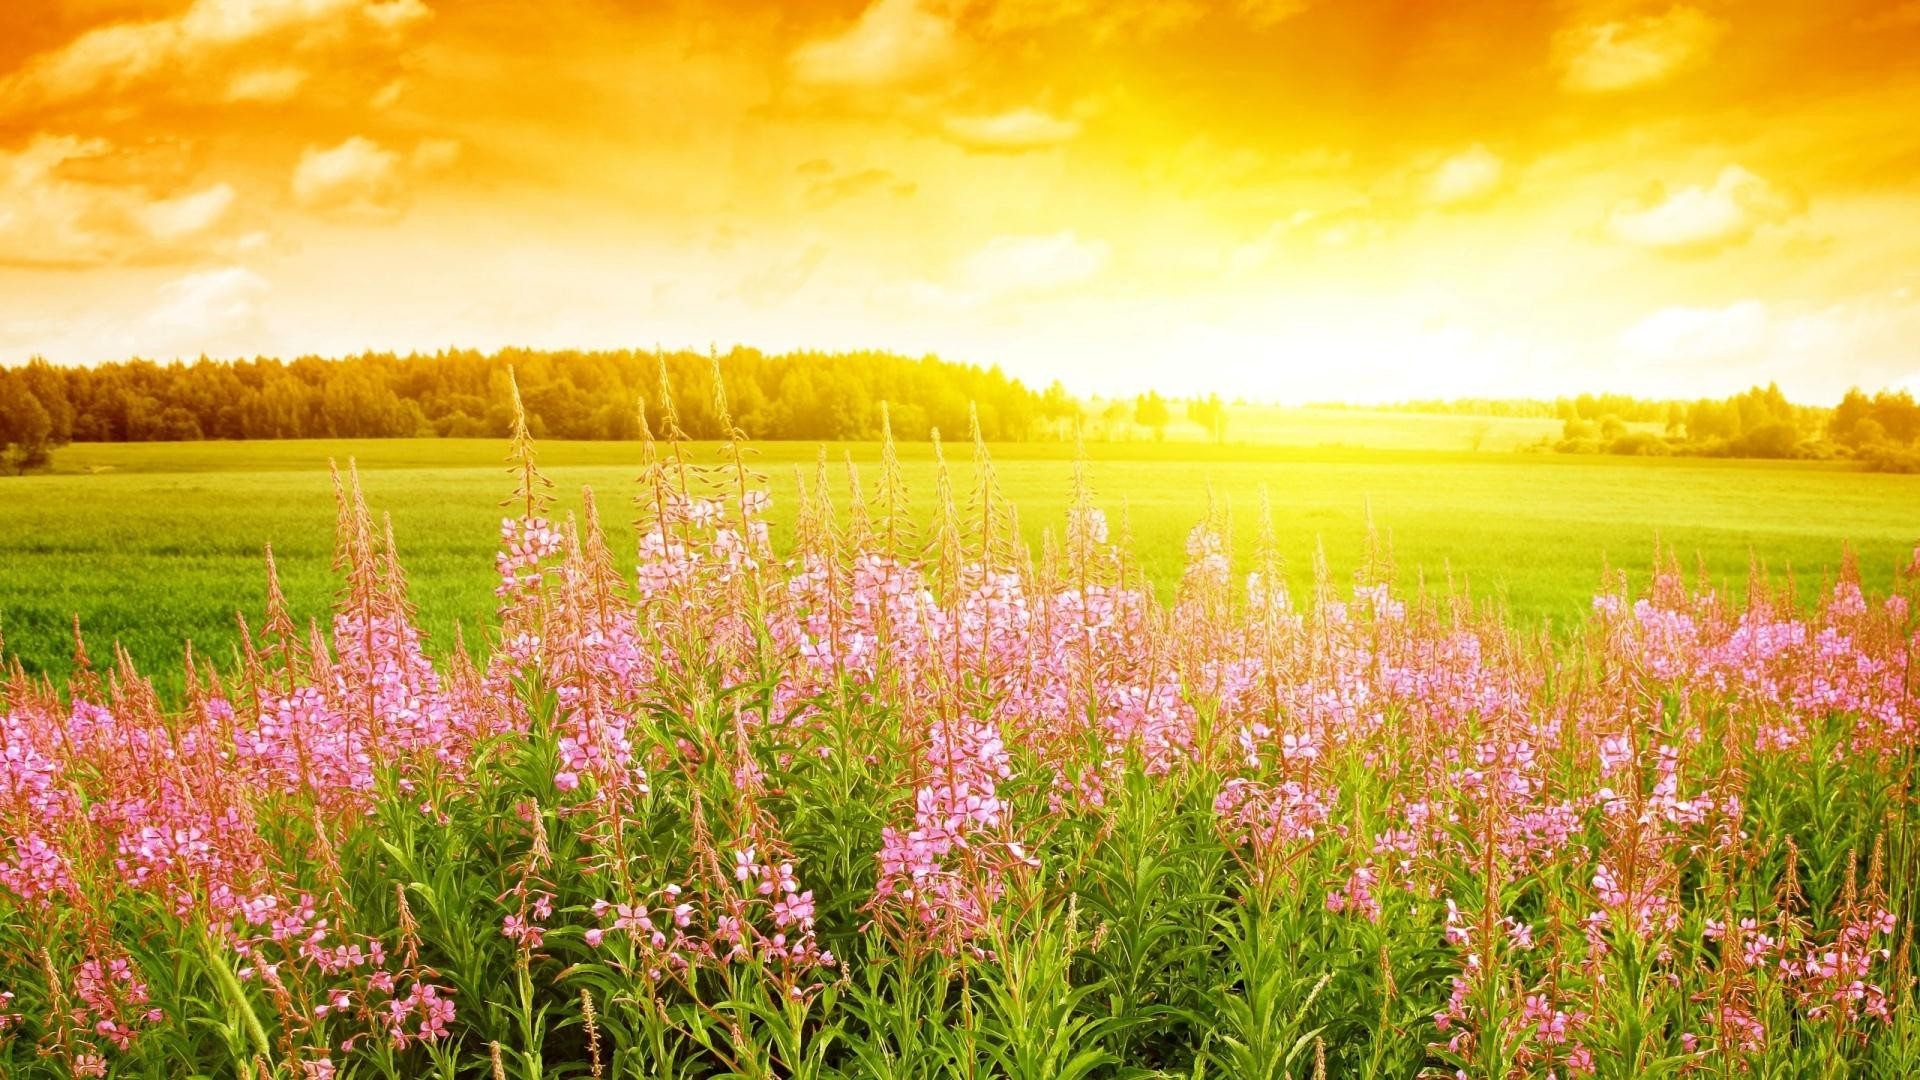 morning bloom of flowers in sun rise nice summer season hd wallpapers free